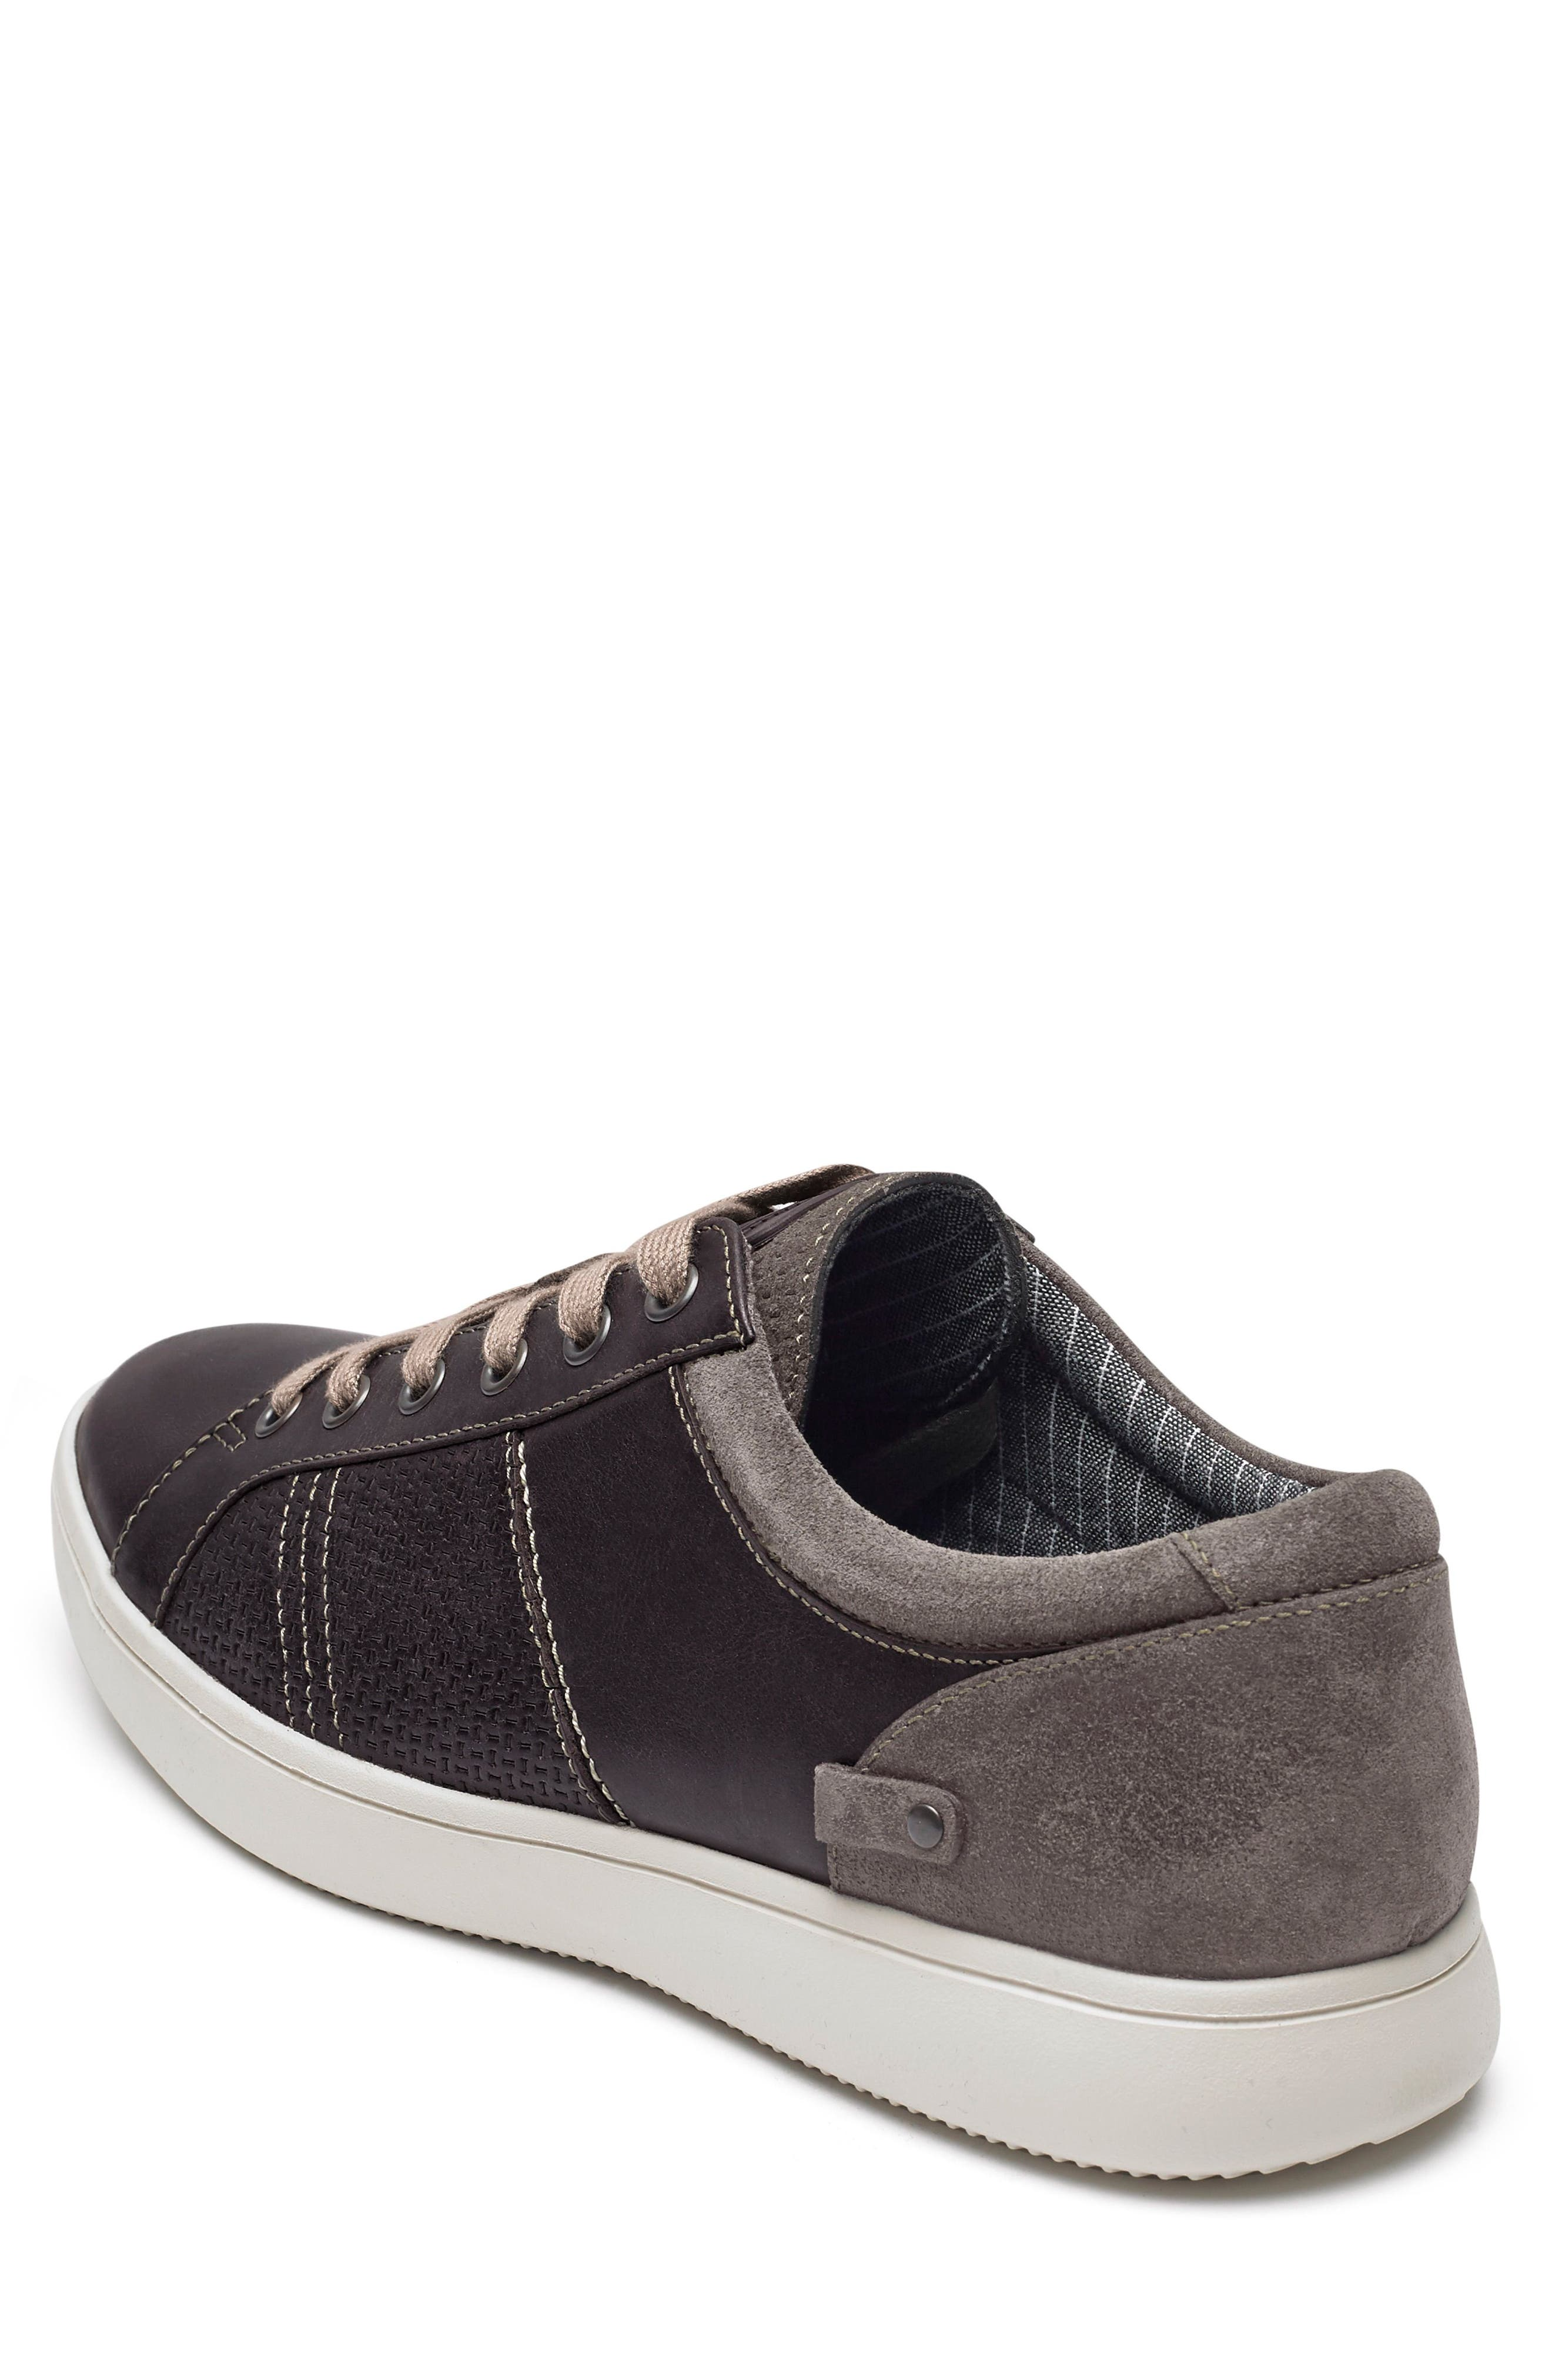 Colle Textured Sneaker,                             Alternate thumbnail 2, color,                             COFFEE LEATHER